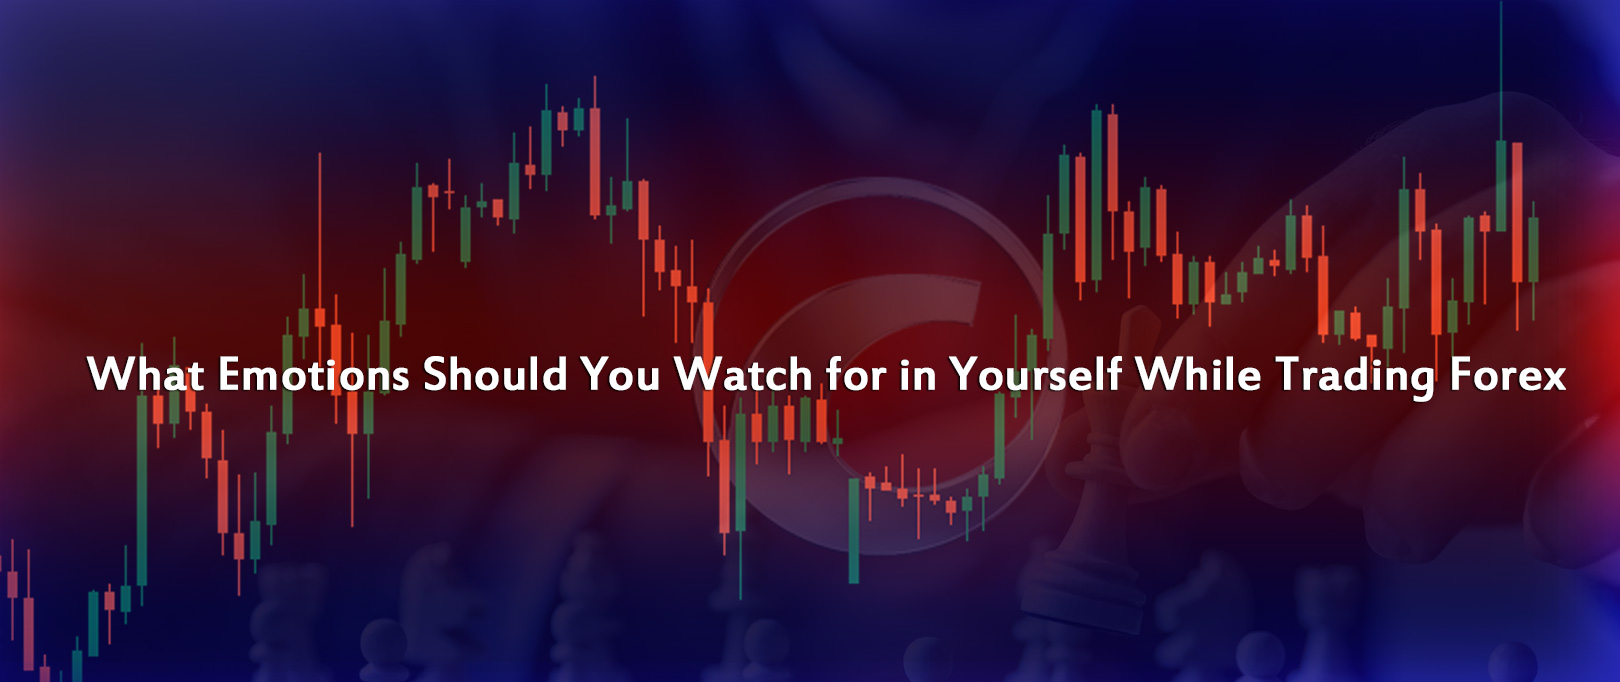 What-Emotions-Should-You-Watch-For-In-Yourself-While-Trading-Forex-by-Prathilaba